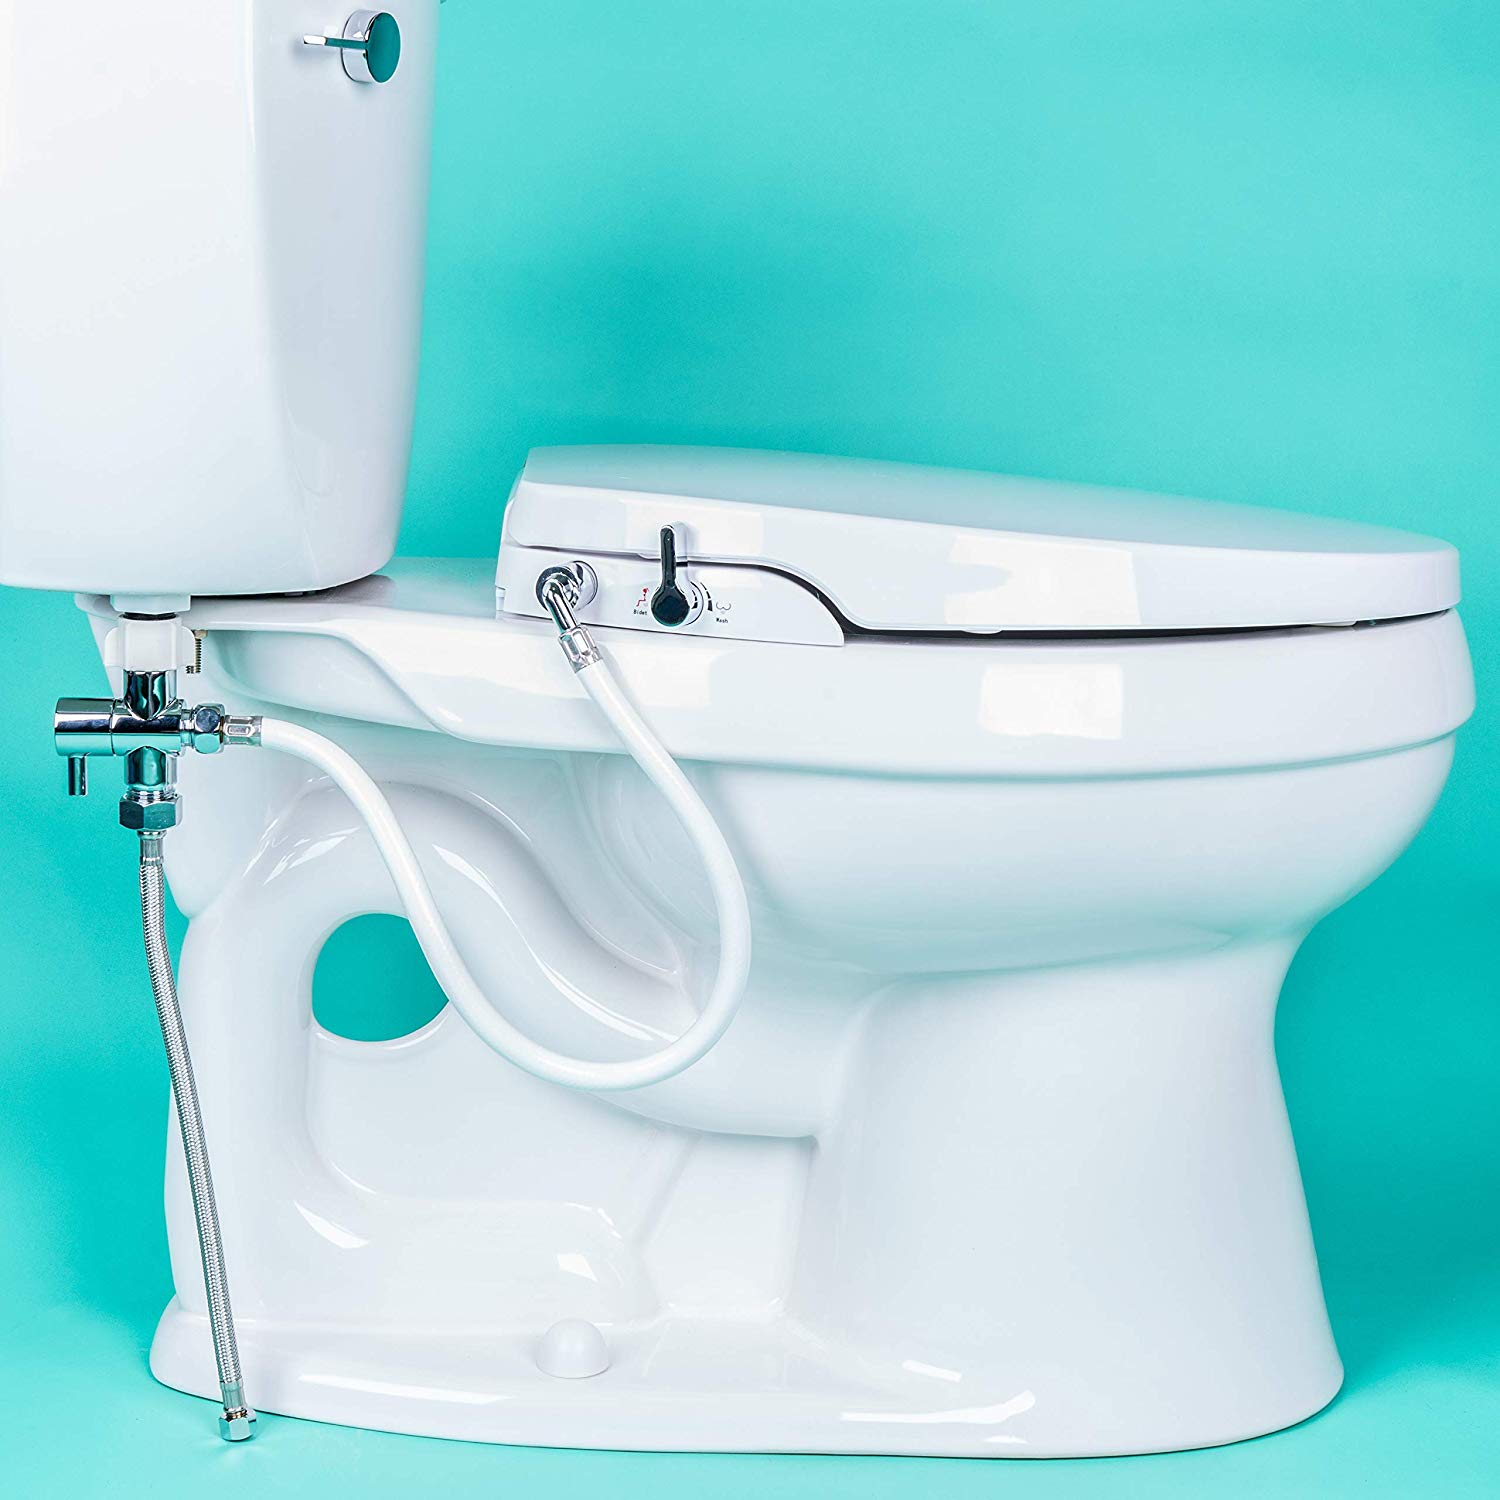 GenieBidet Elongated Seat